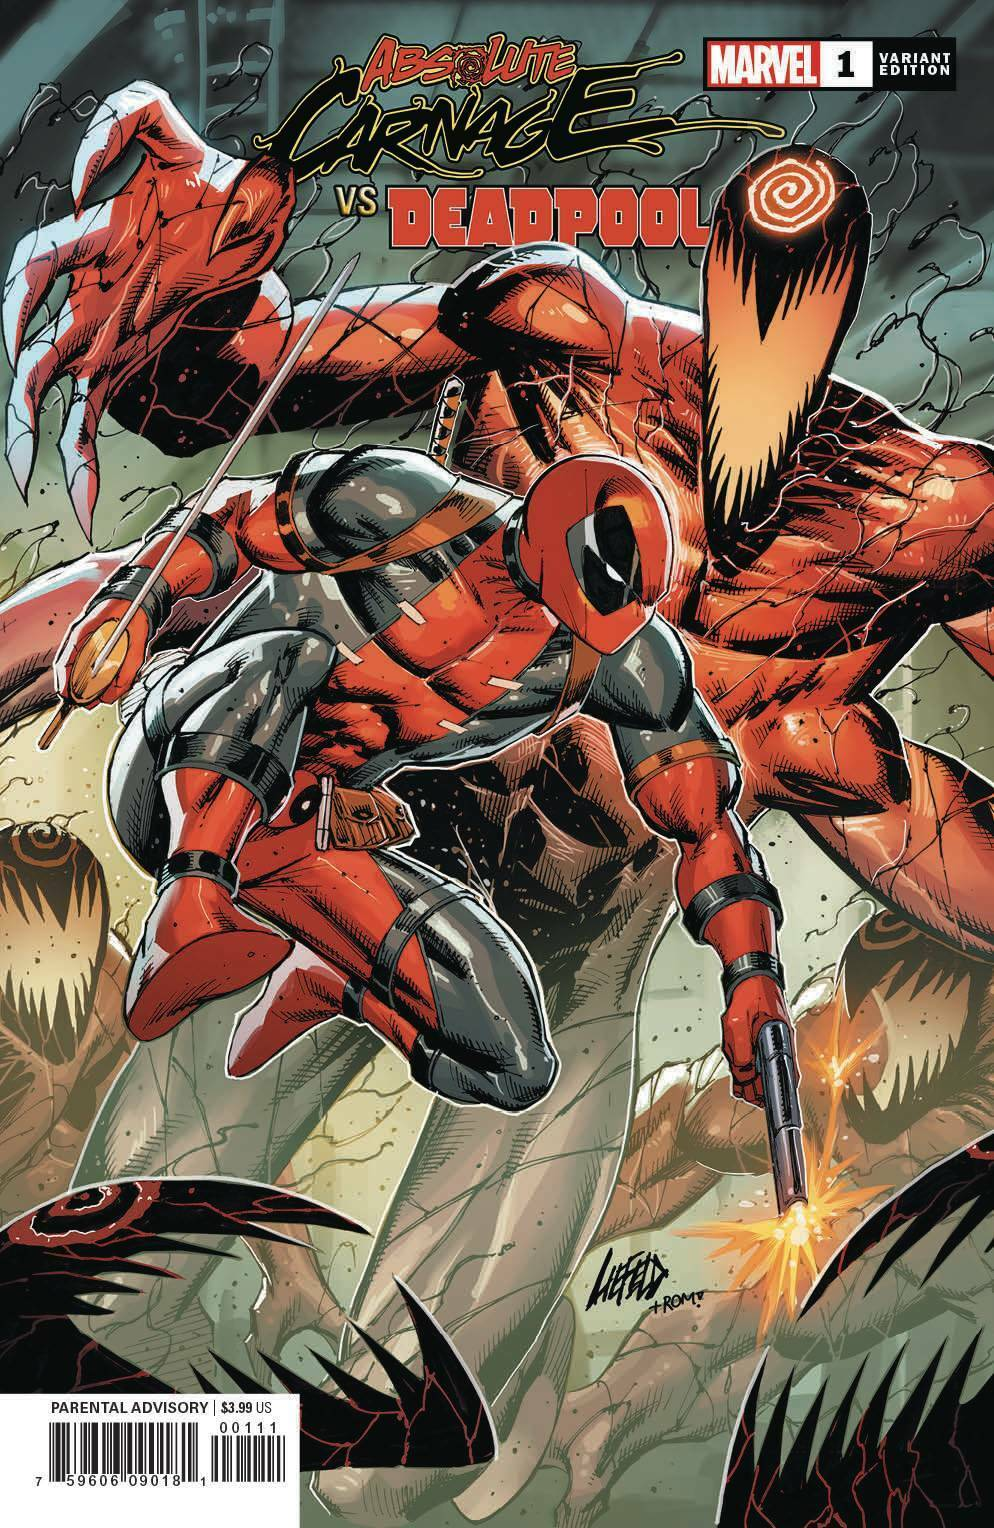 ABSOLUTE CARNAGE VS. DEADPOOL #1 LIEFELD VARIANT (2019) VF/NM MARVEL